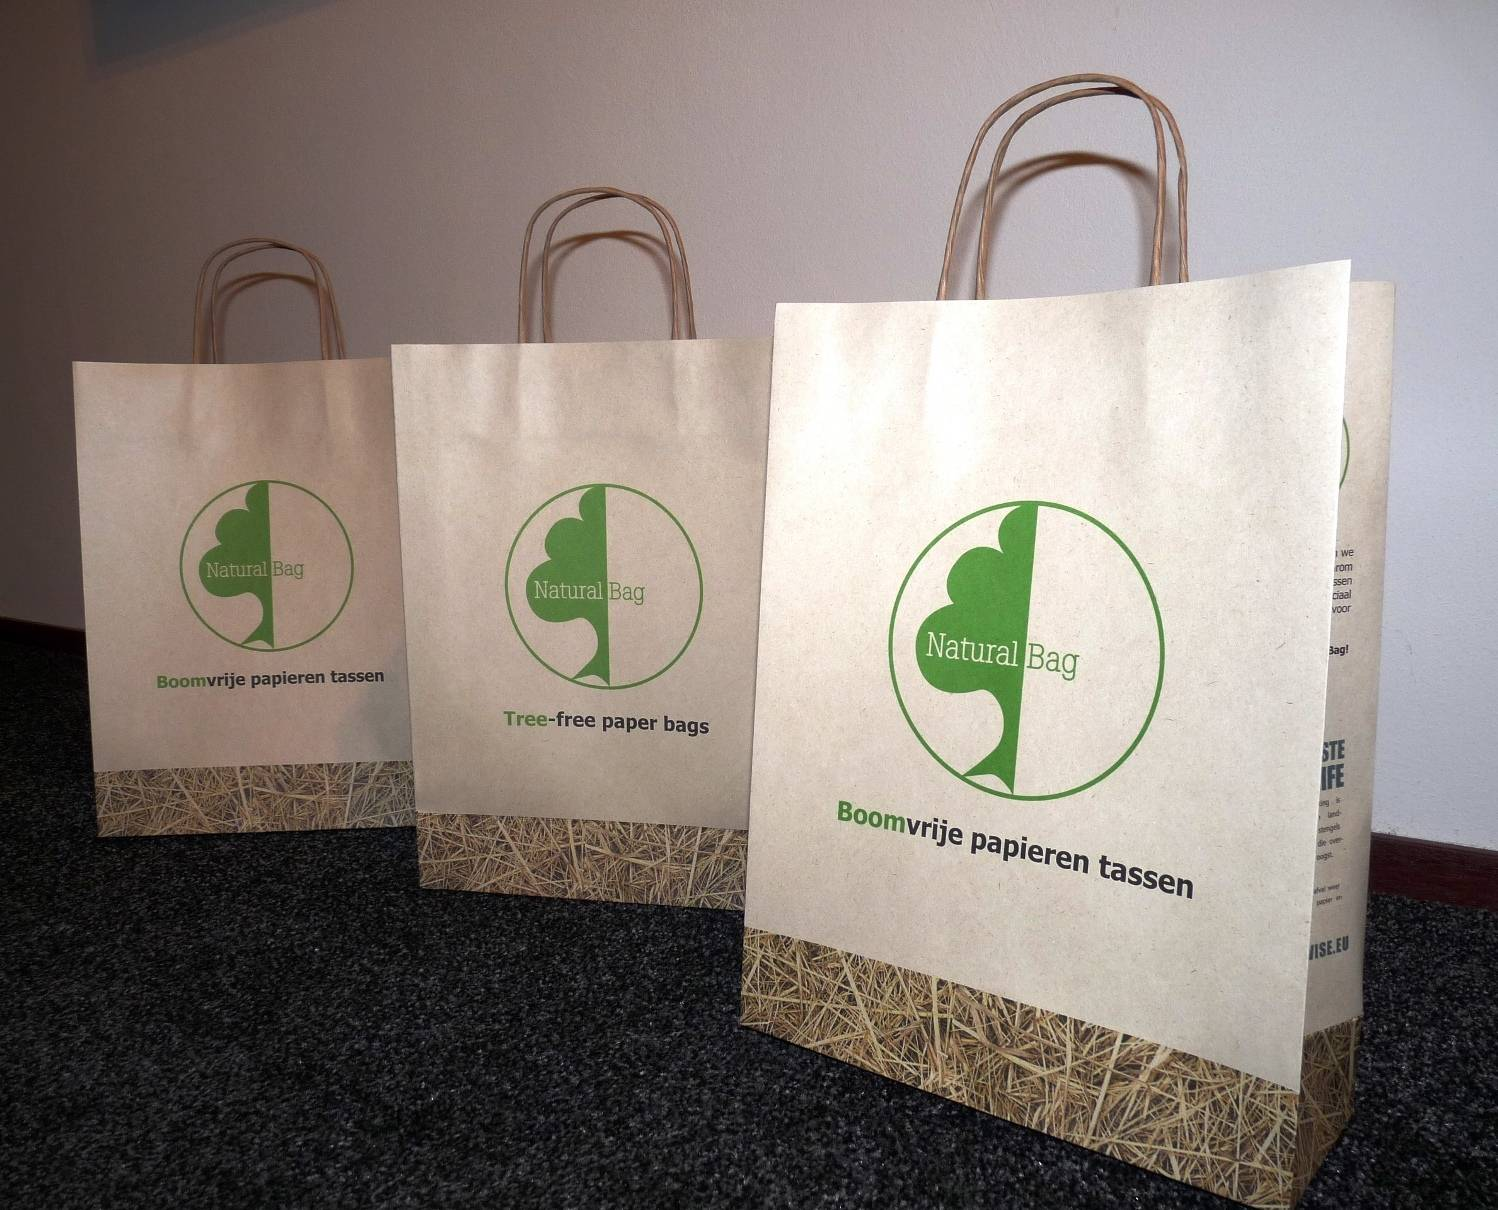 Natural Bag - Boomvrije papieren tas 4